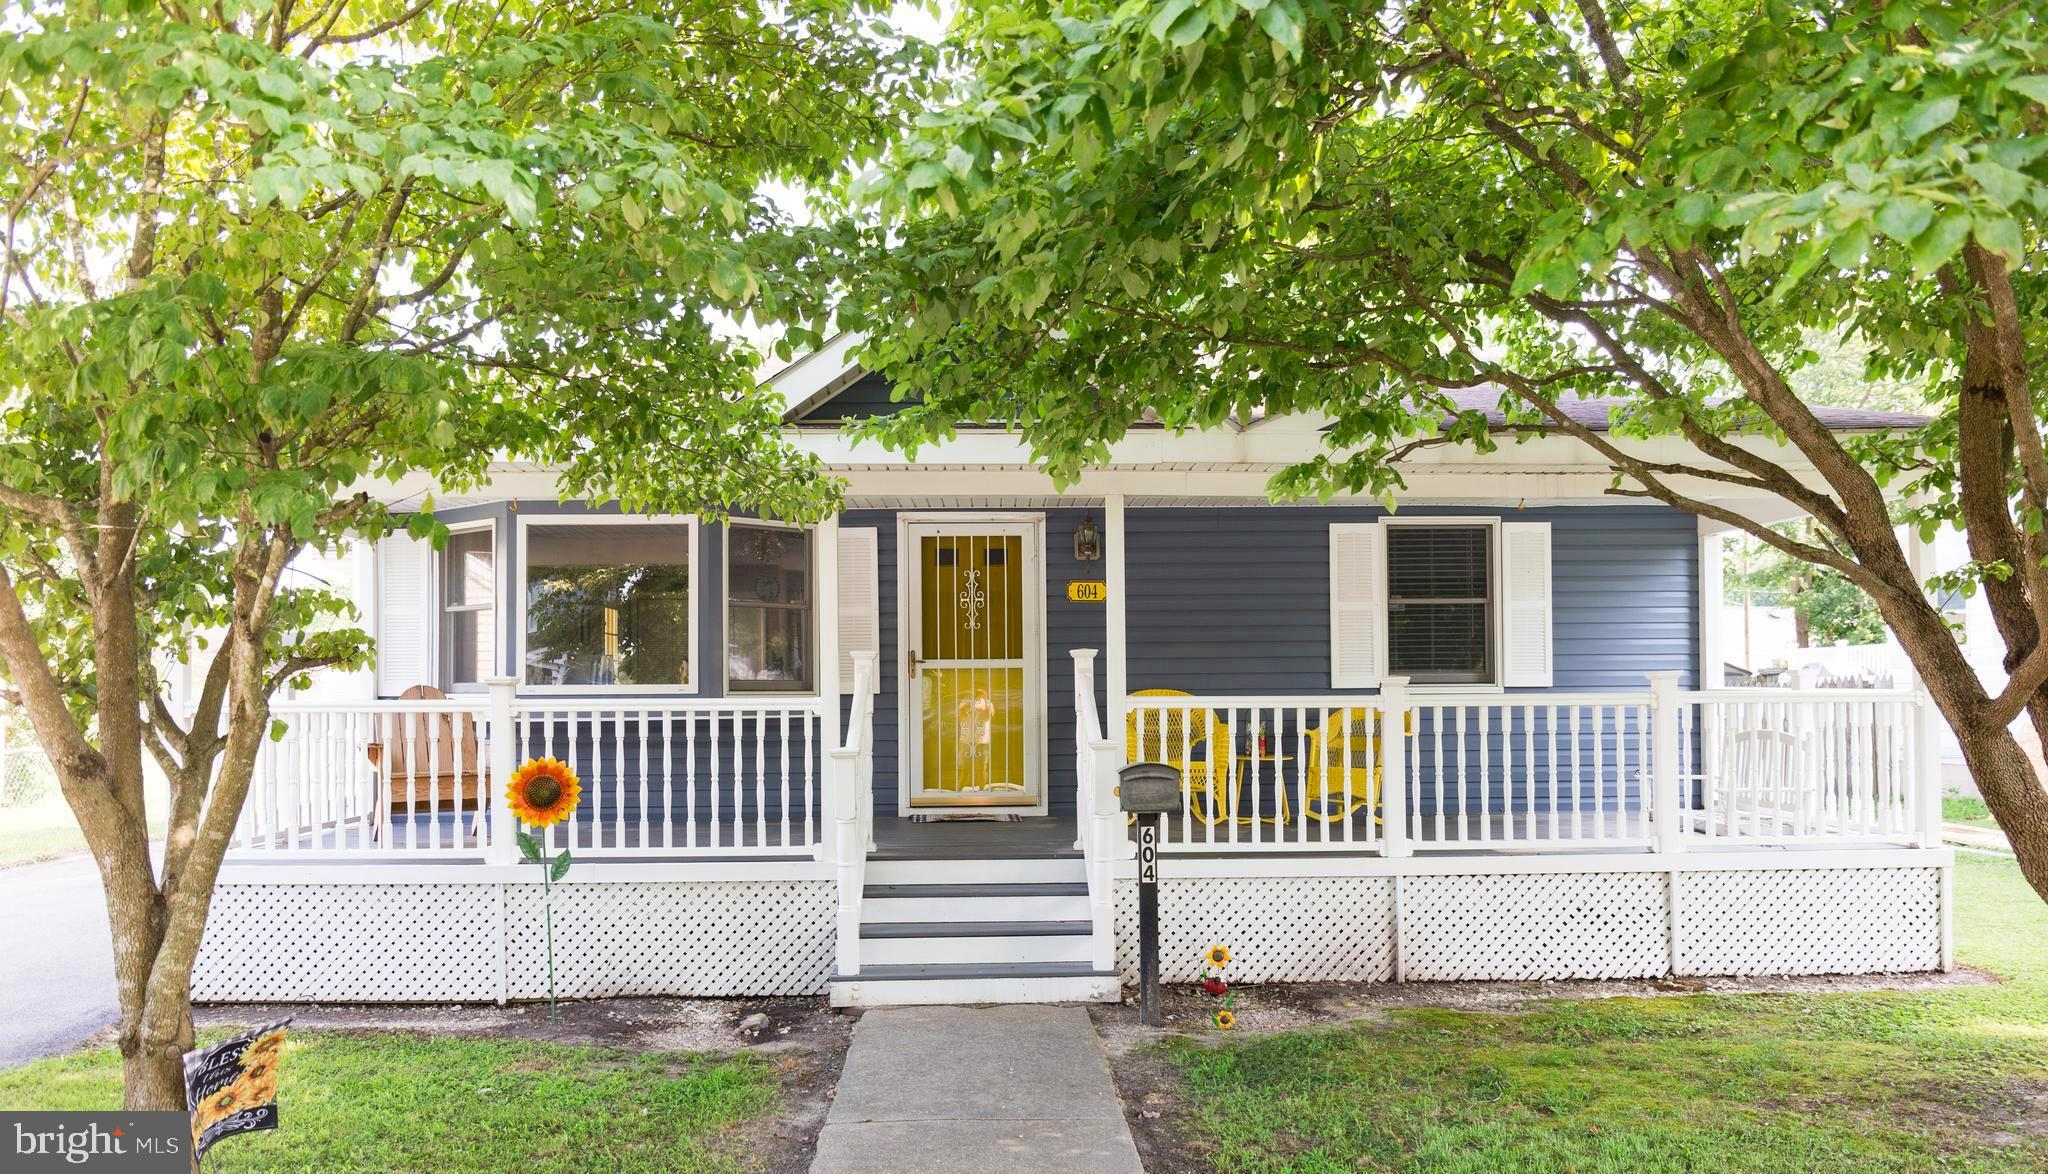 Delightful 2 bedroom 1 bath bungalow in Delmar! Welcoming full length front porch, spacious living r